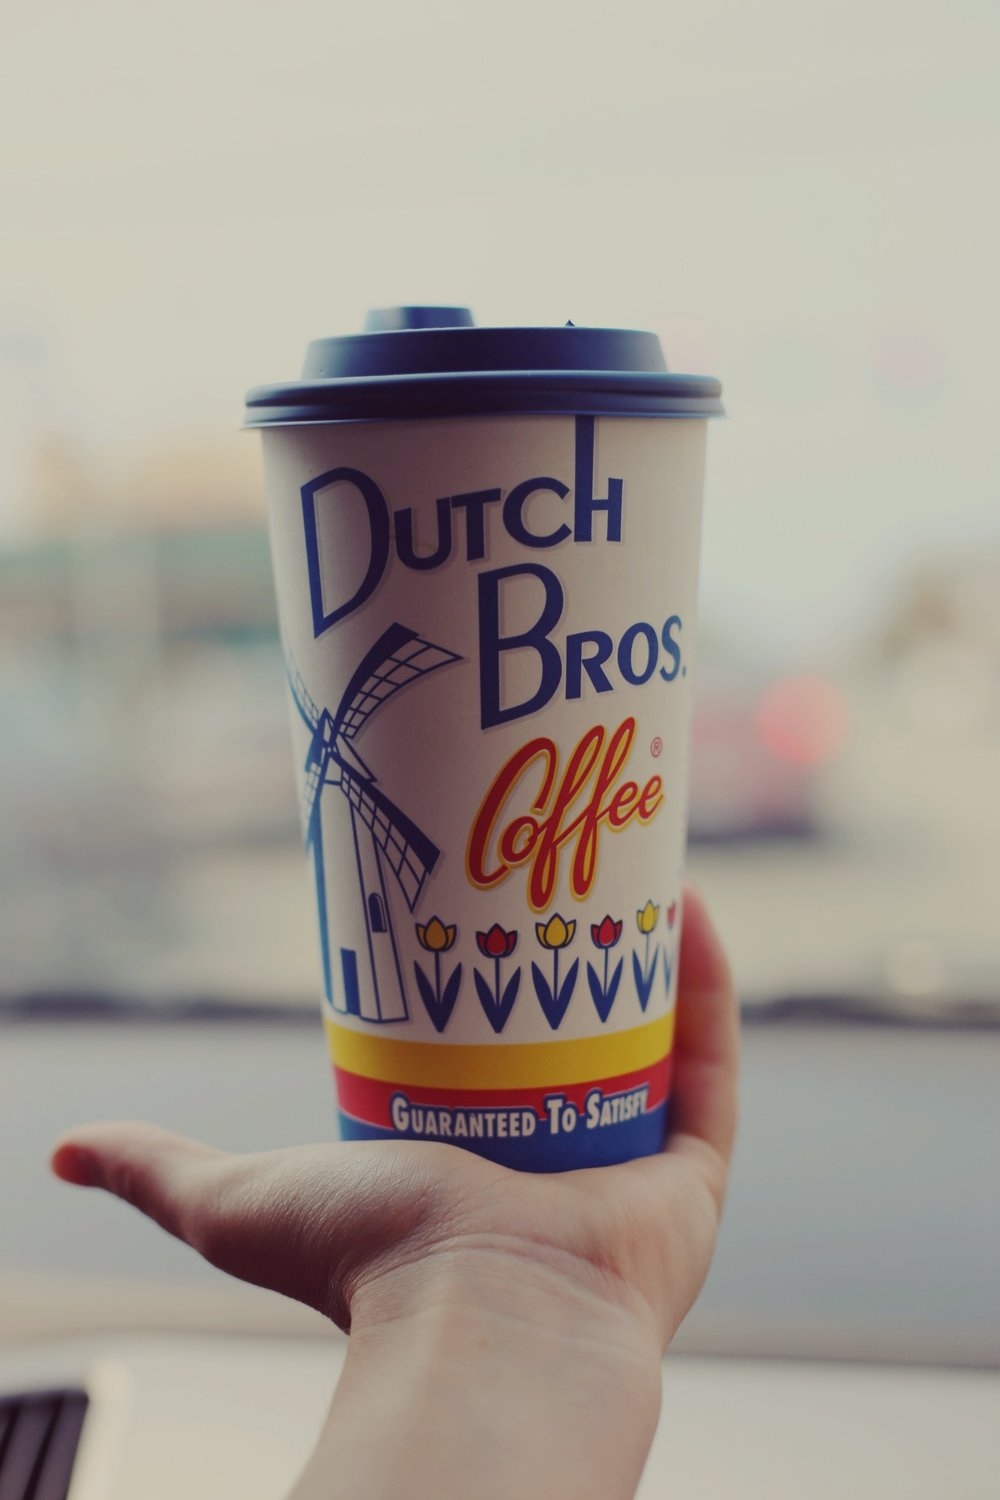 My first Dutch Bros, not my last.